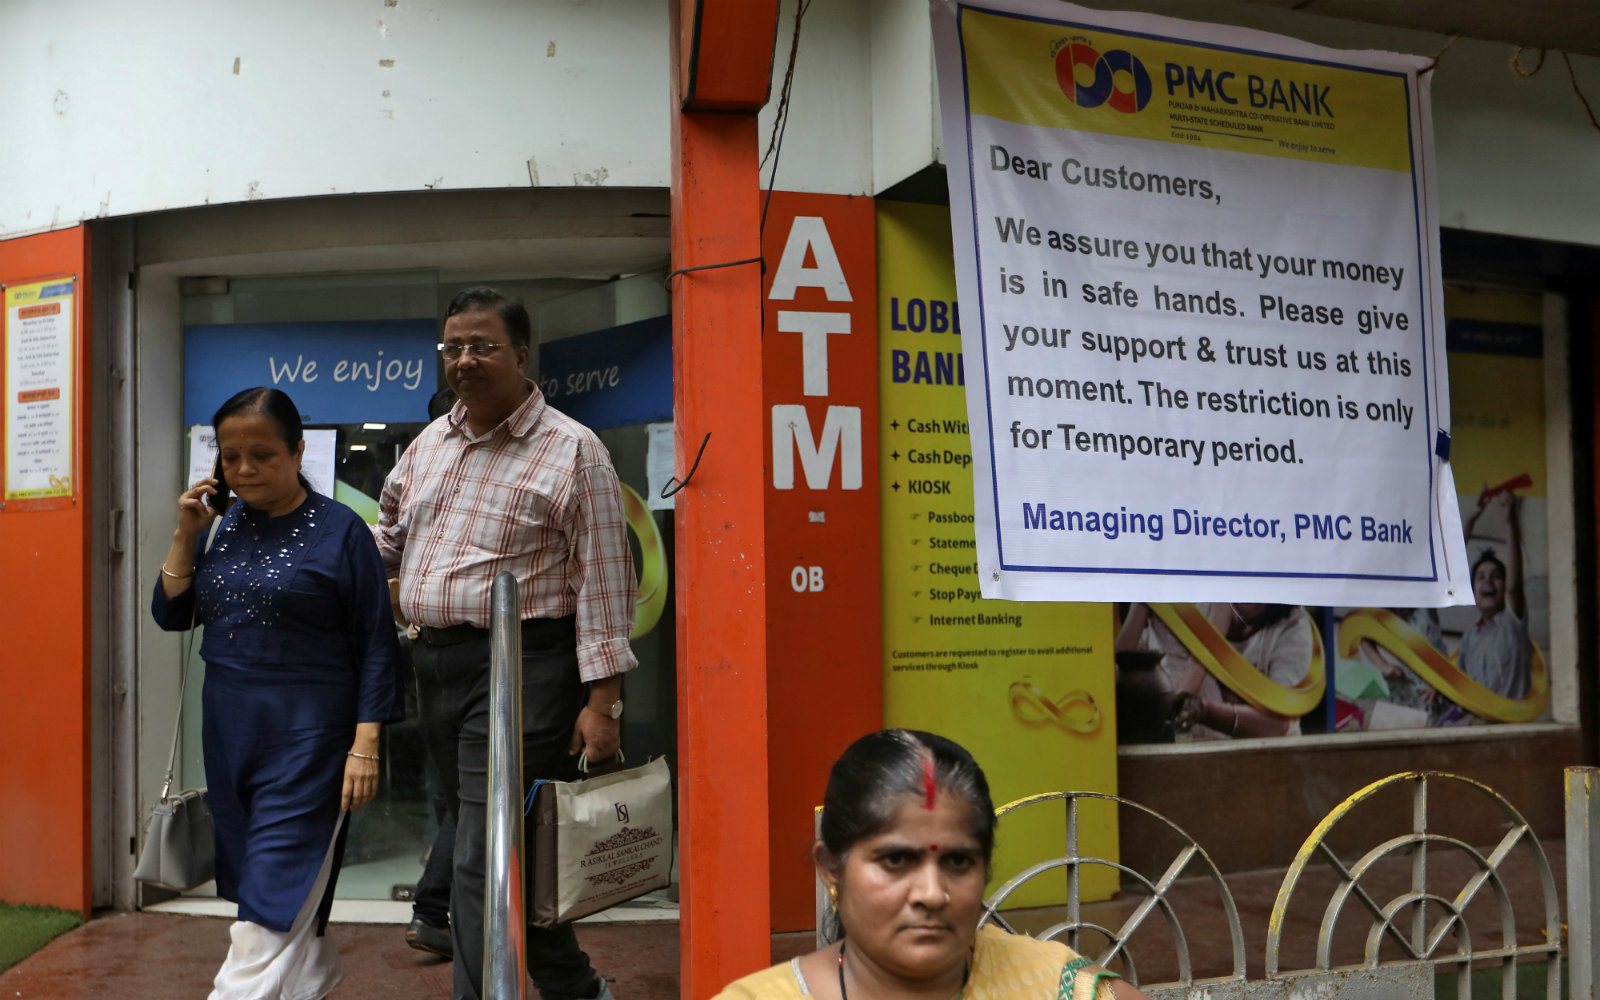 RBI's flouting of RTI norms may've caused PMC Bank crisis